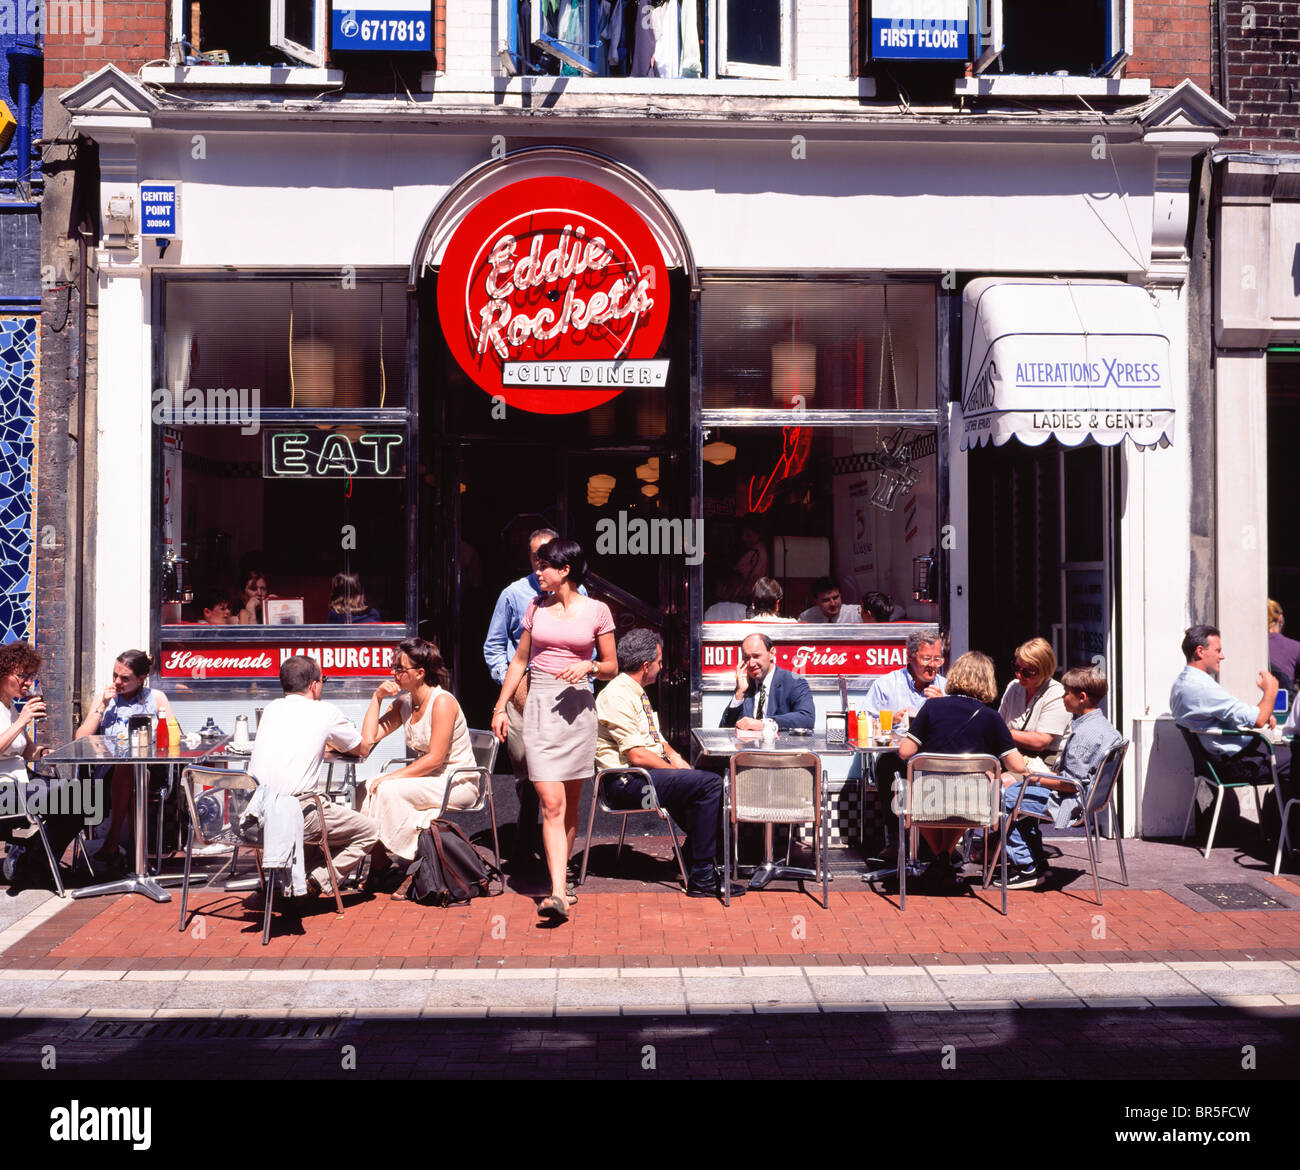 Dublin, Co Dublin, Ireland, Cafe Eddie Rockets - Stock Image